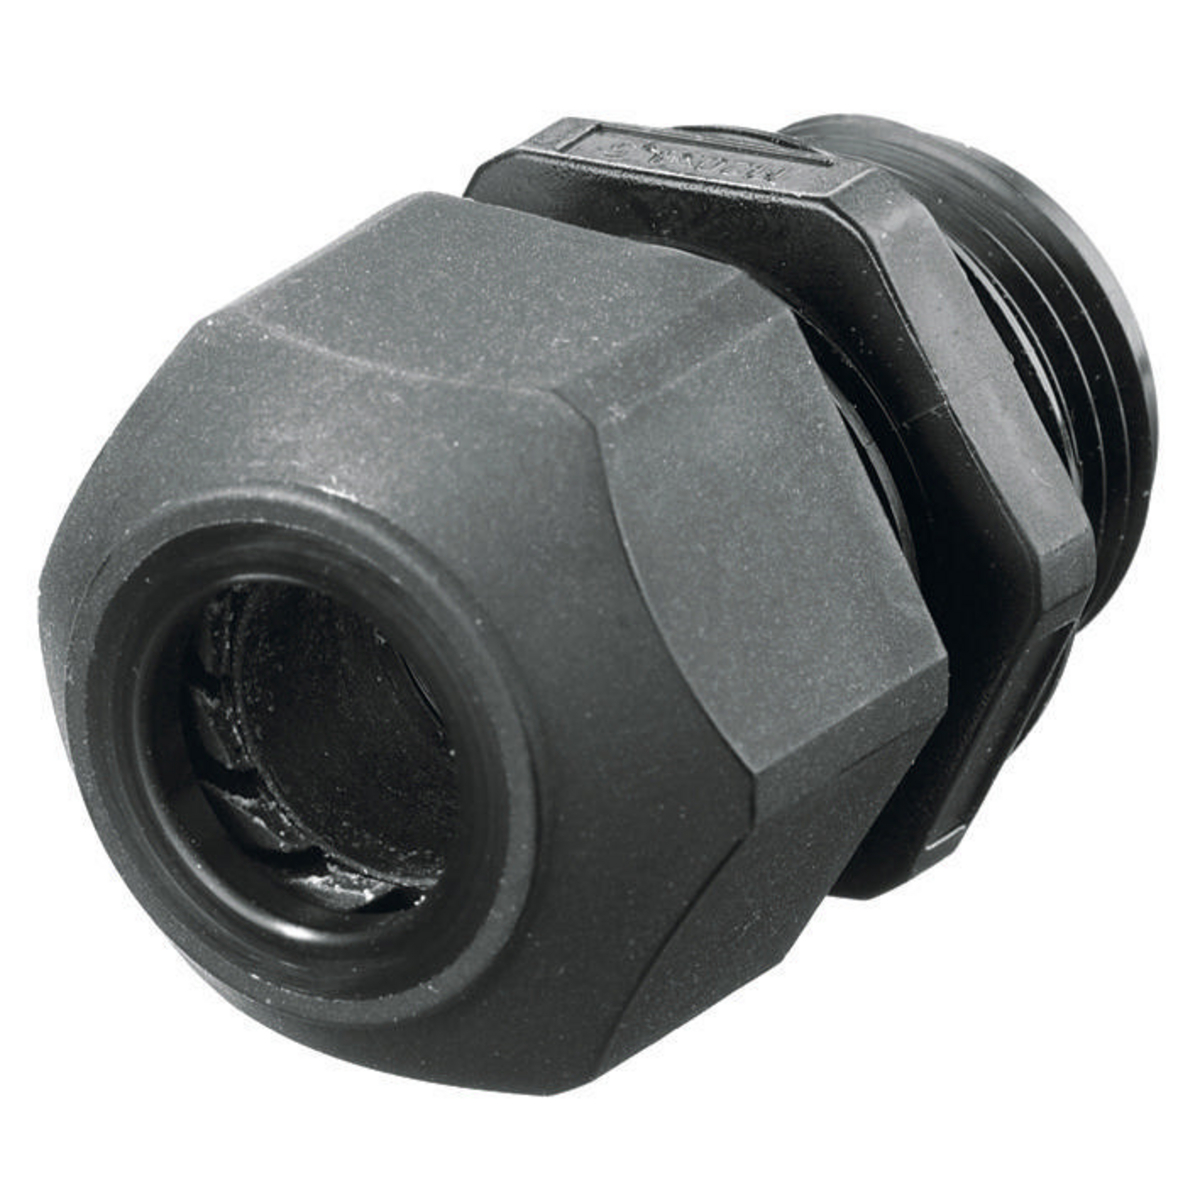 Hubbell SEC75BA 3/4 Inch Threaded 0.45 to 0.71 Inch Black Non-Metallic Low Profile Cord Connector